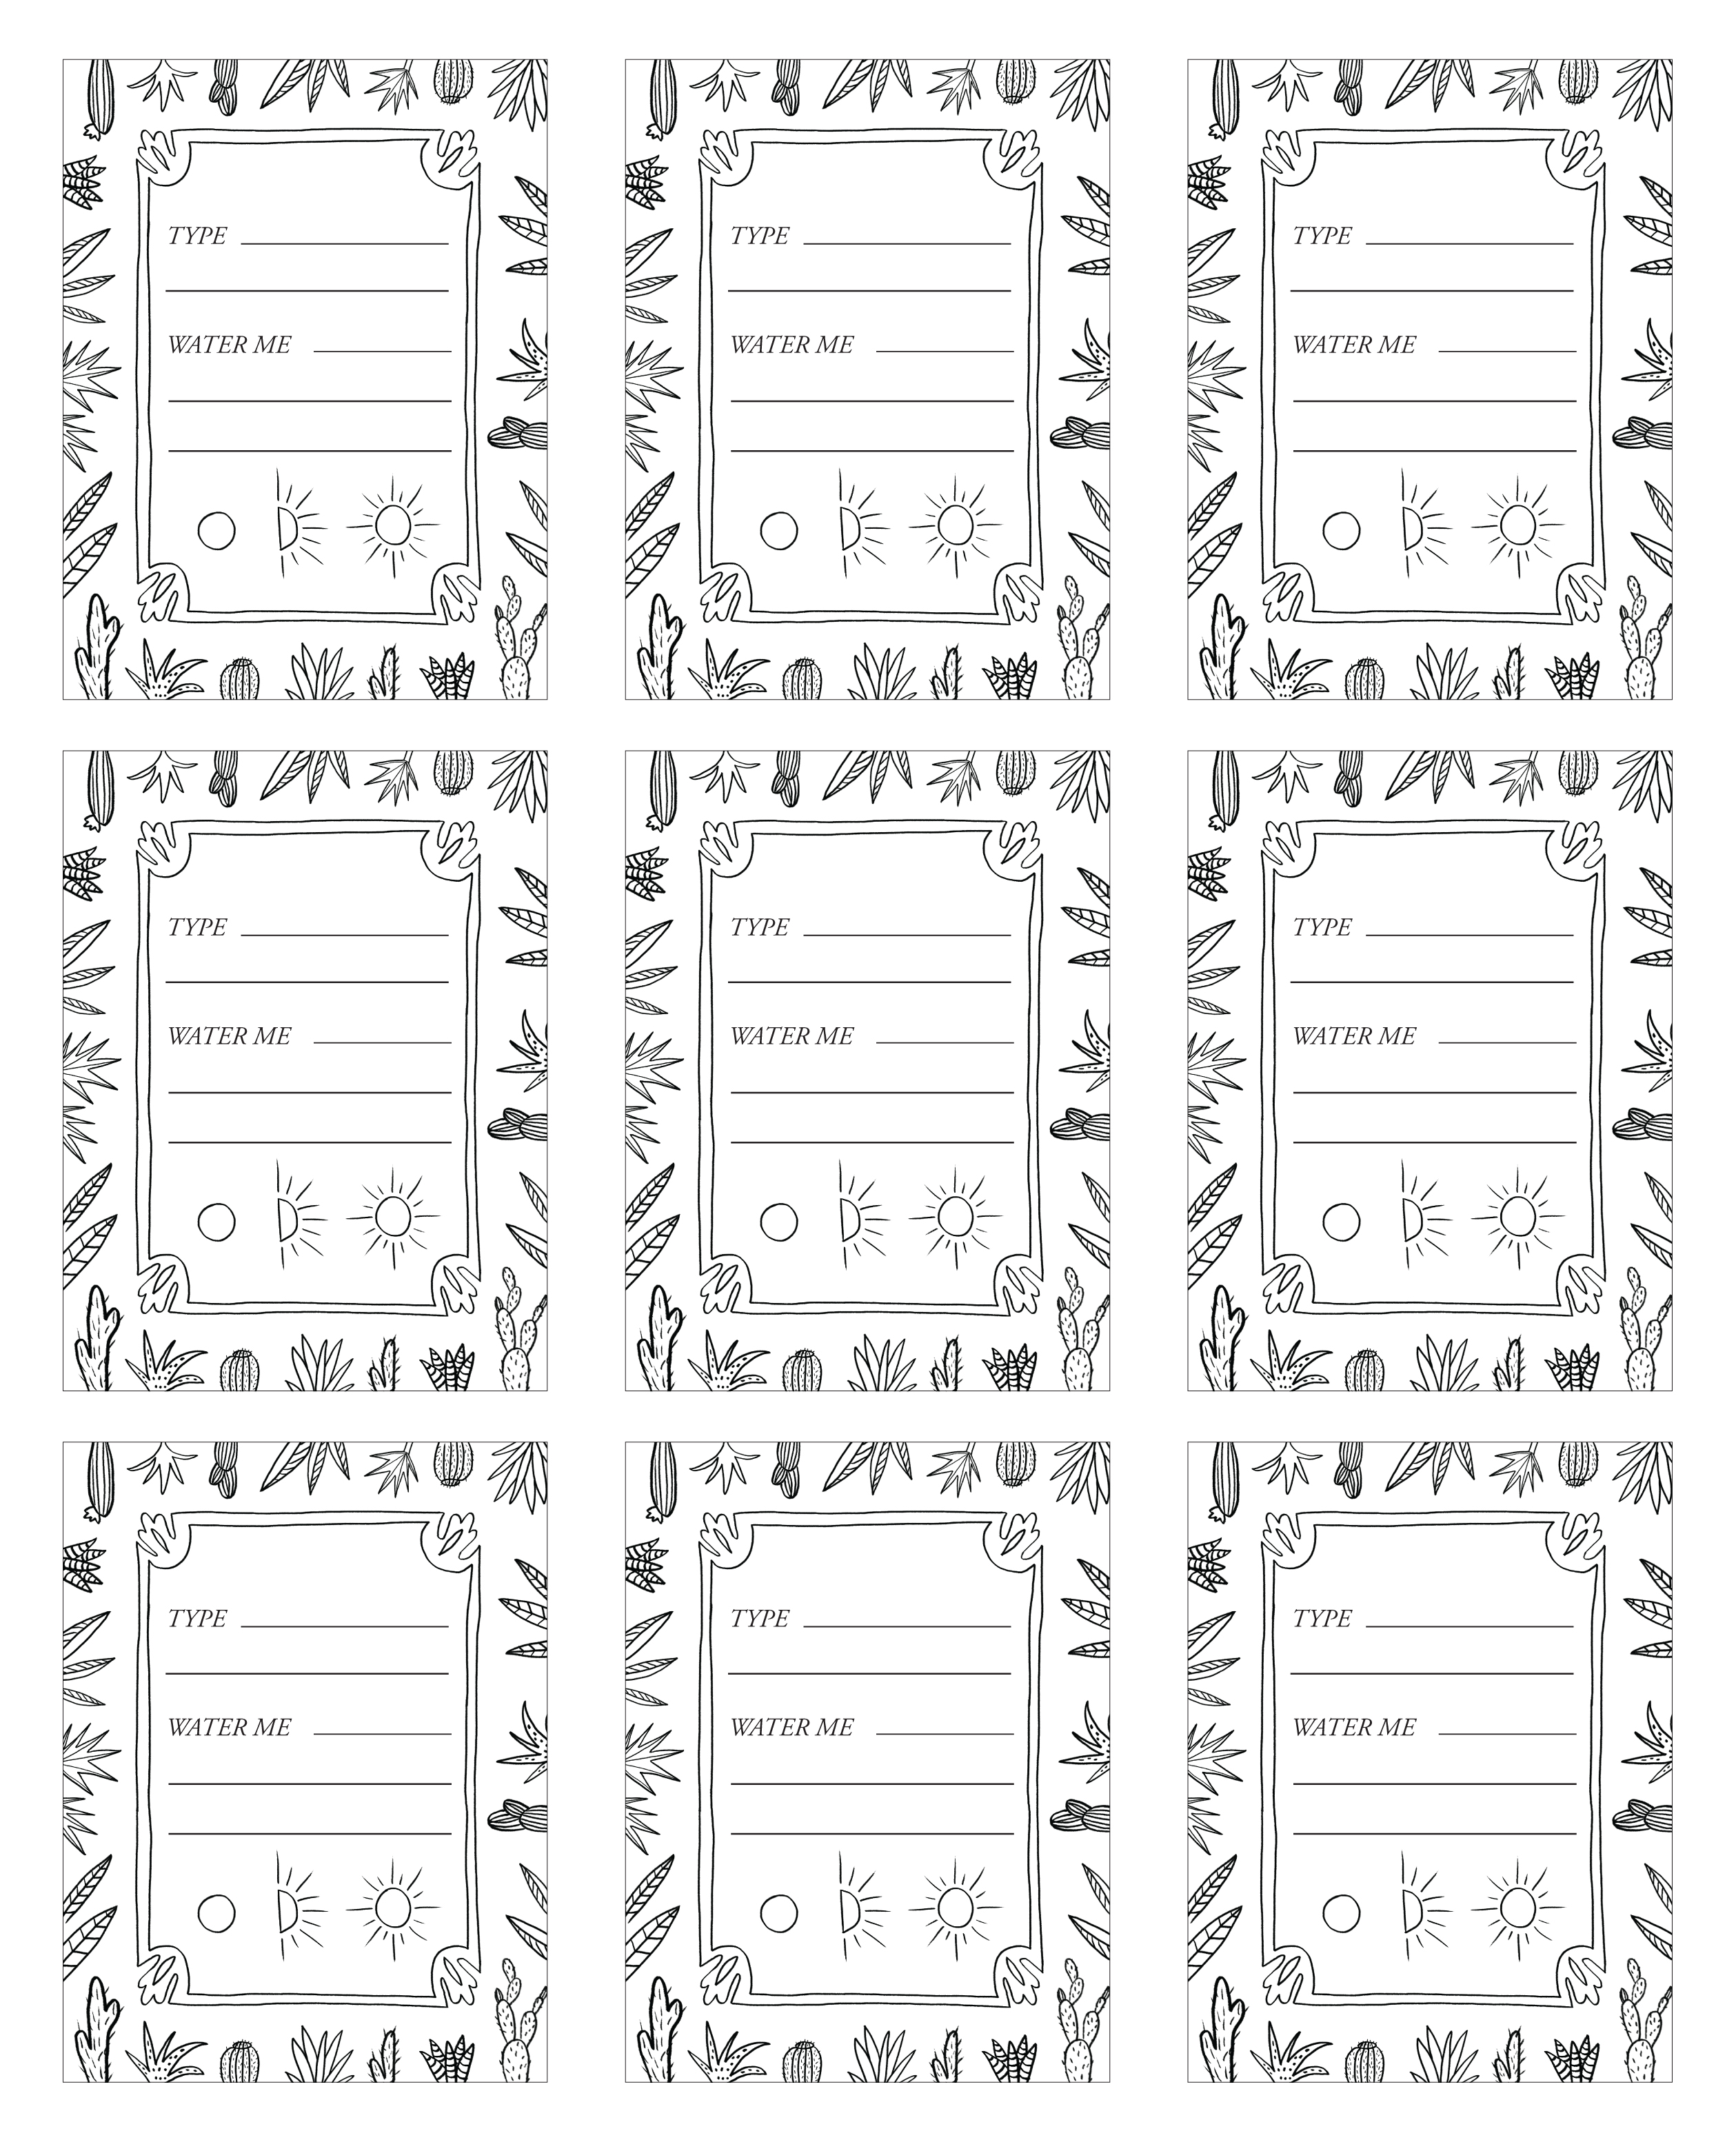 Diy Patternful Planters Free Printables